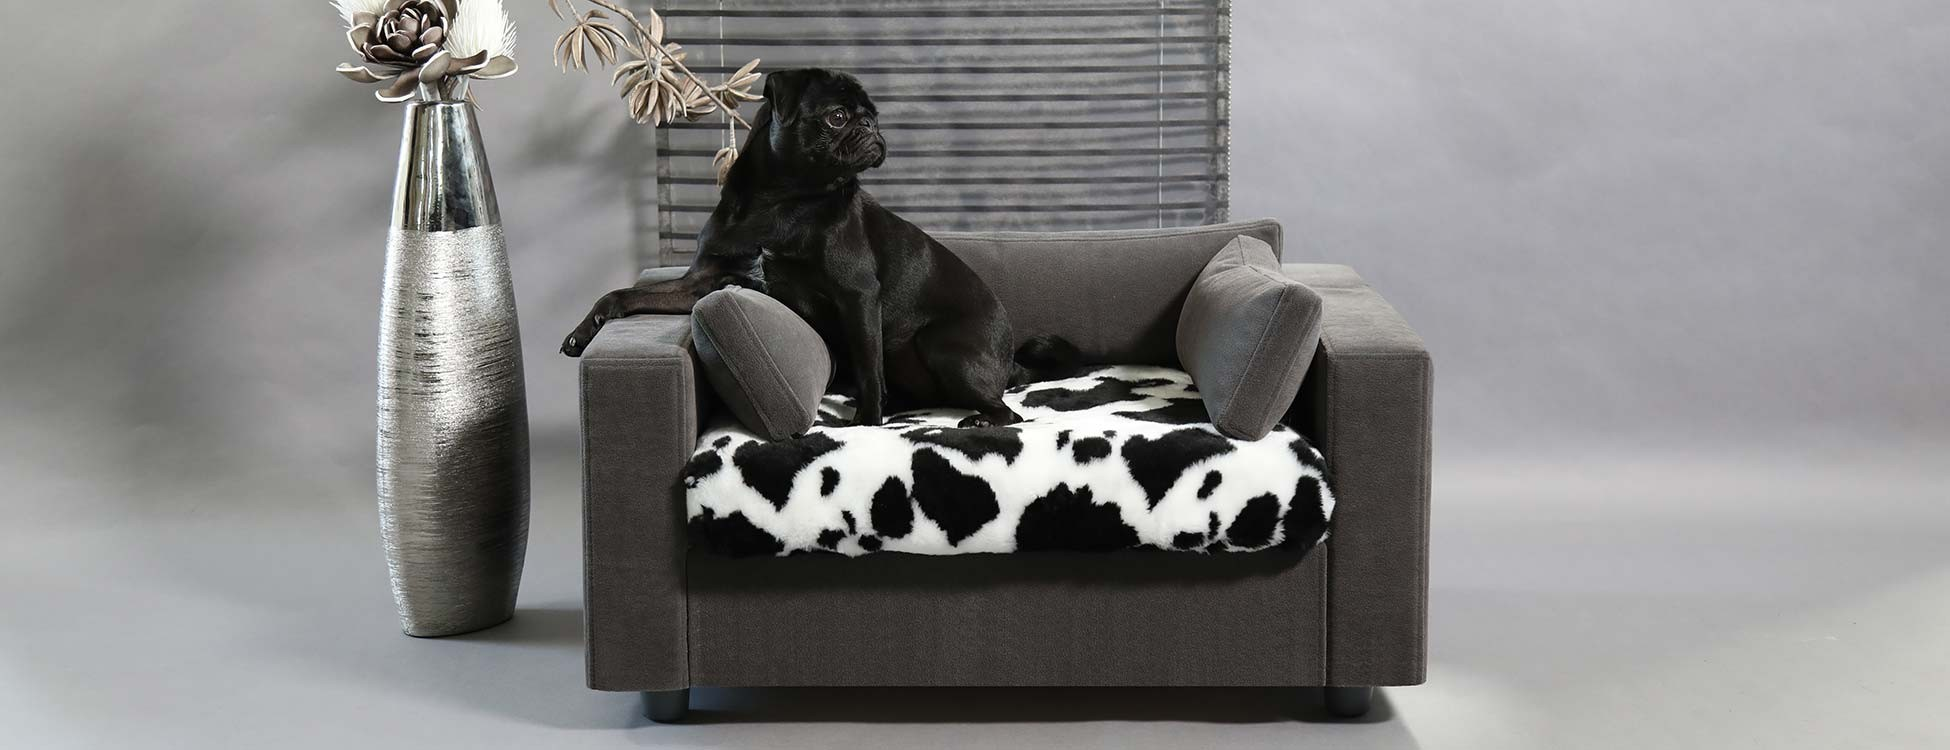 pourquoi choisir un canap pour votre chien ou chat. Black Bedroom Furniture Sets. Home Design Ideas